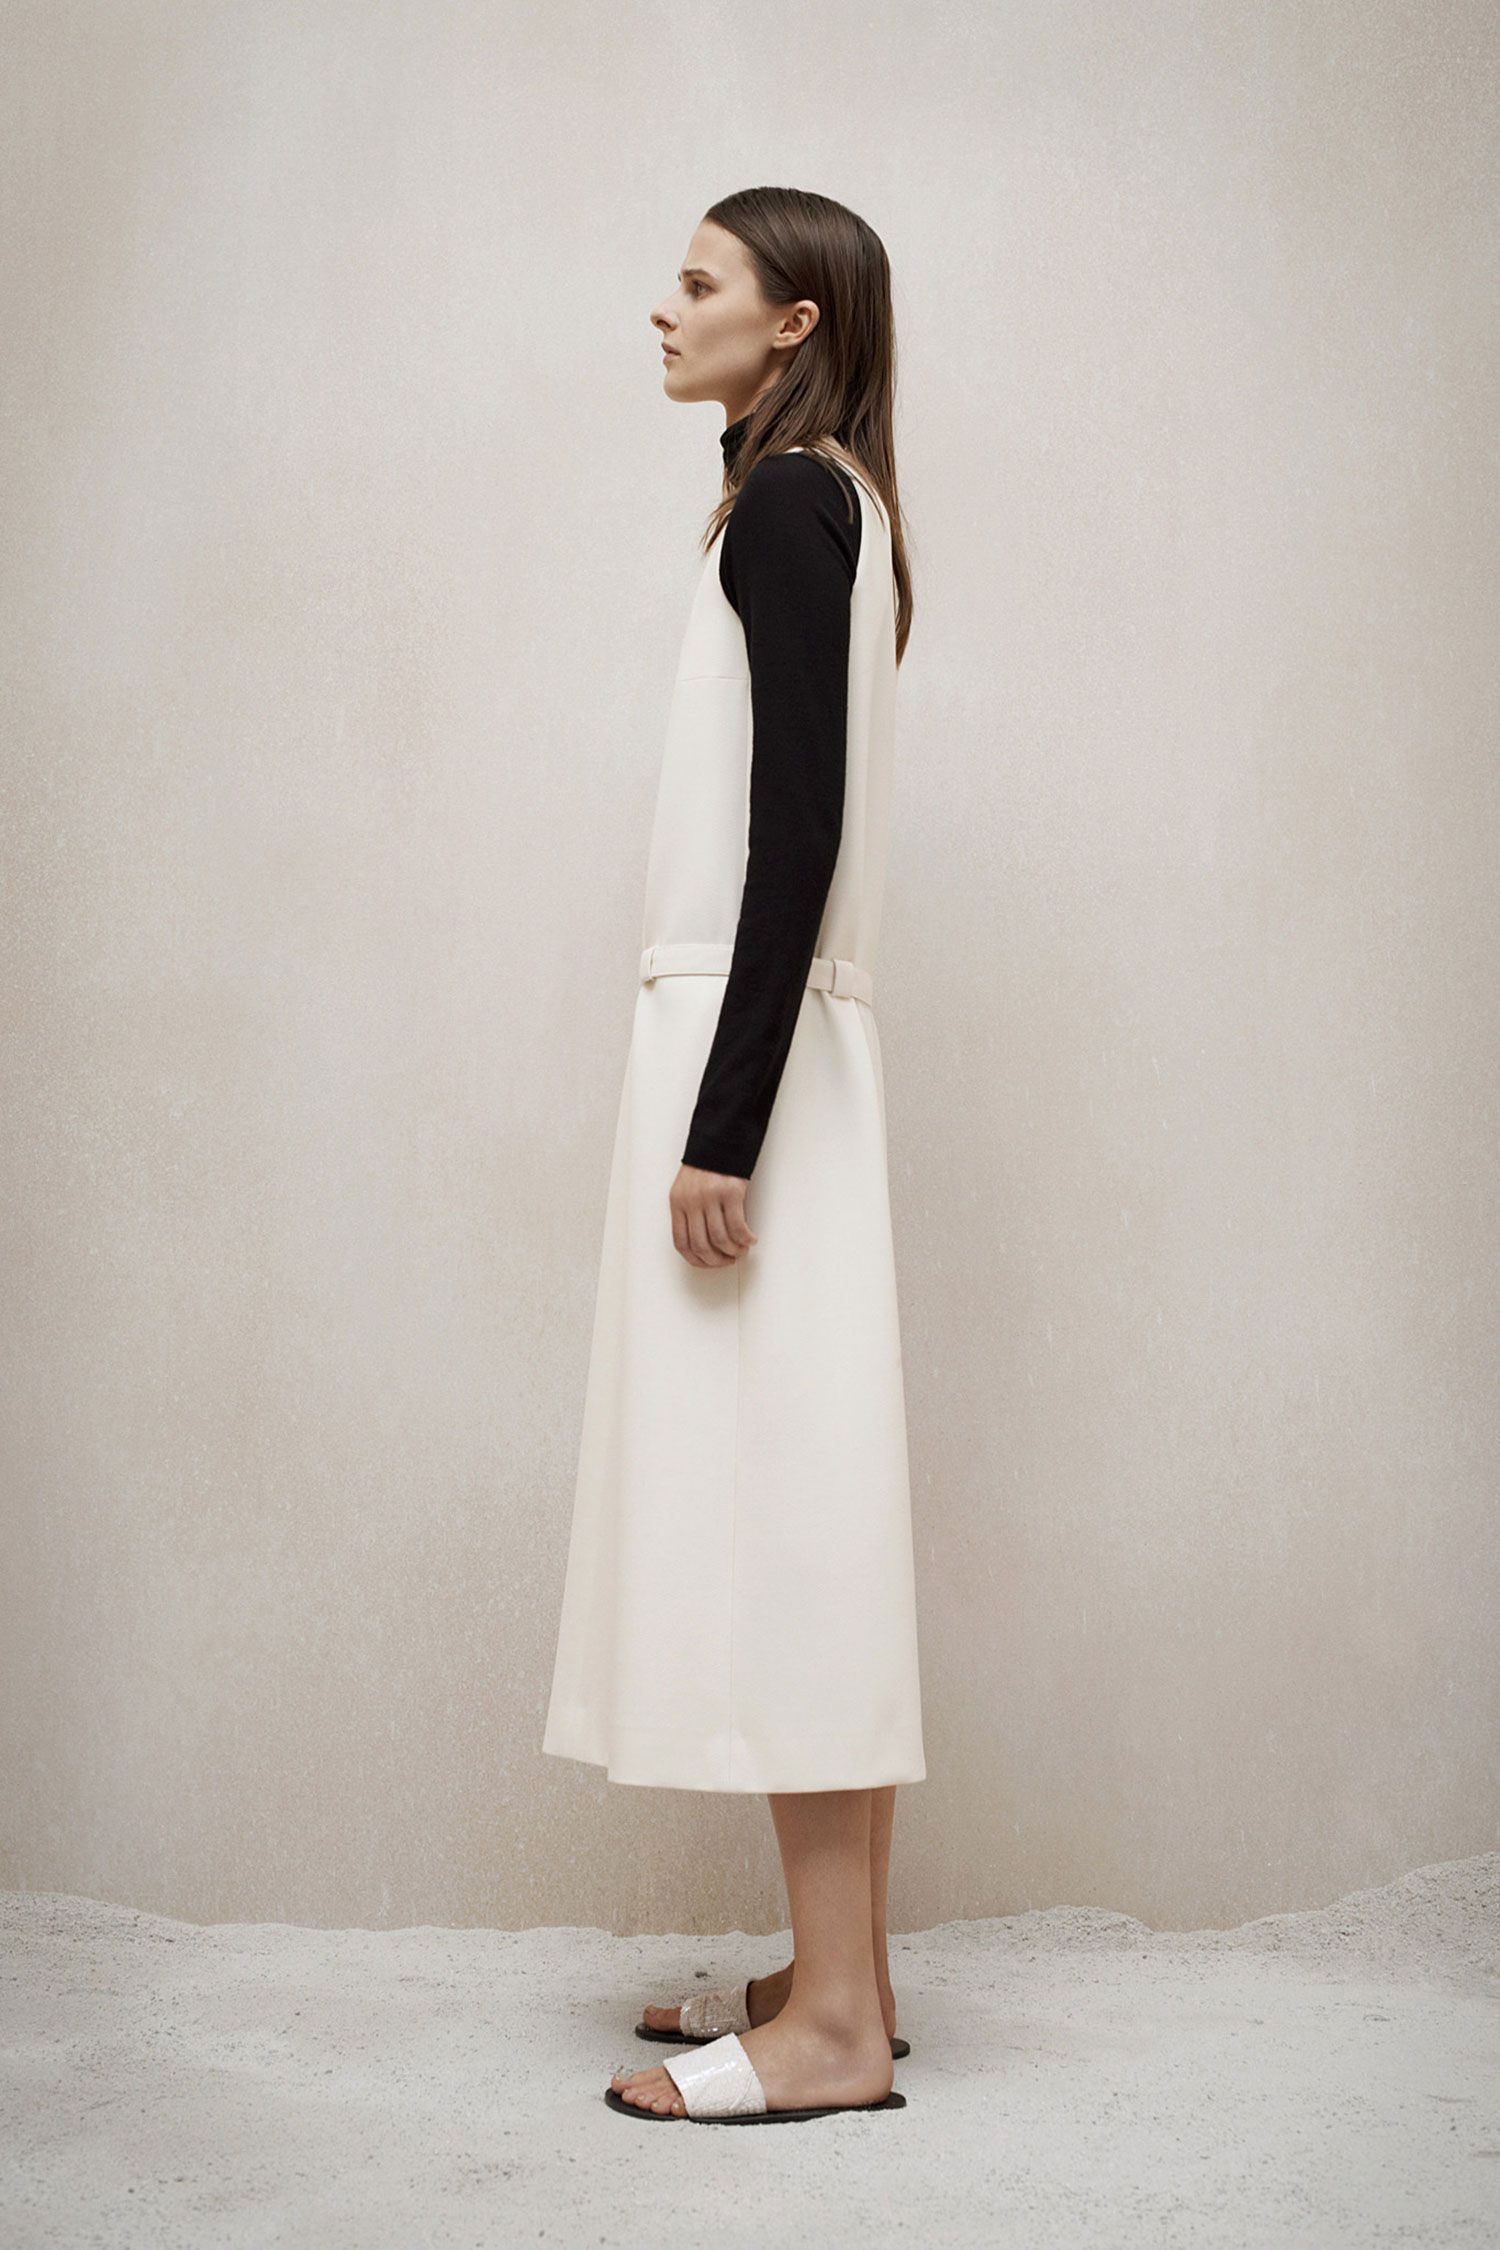 ways to be parisian in prefall jumper normcore and minimal chic